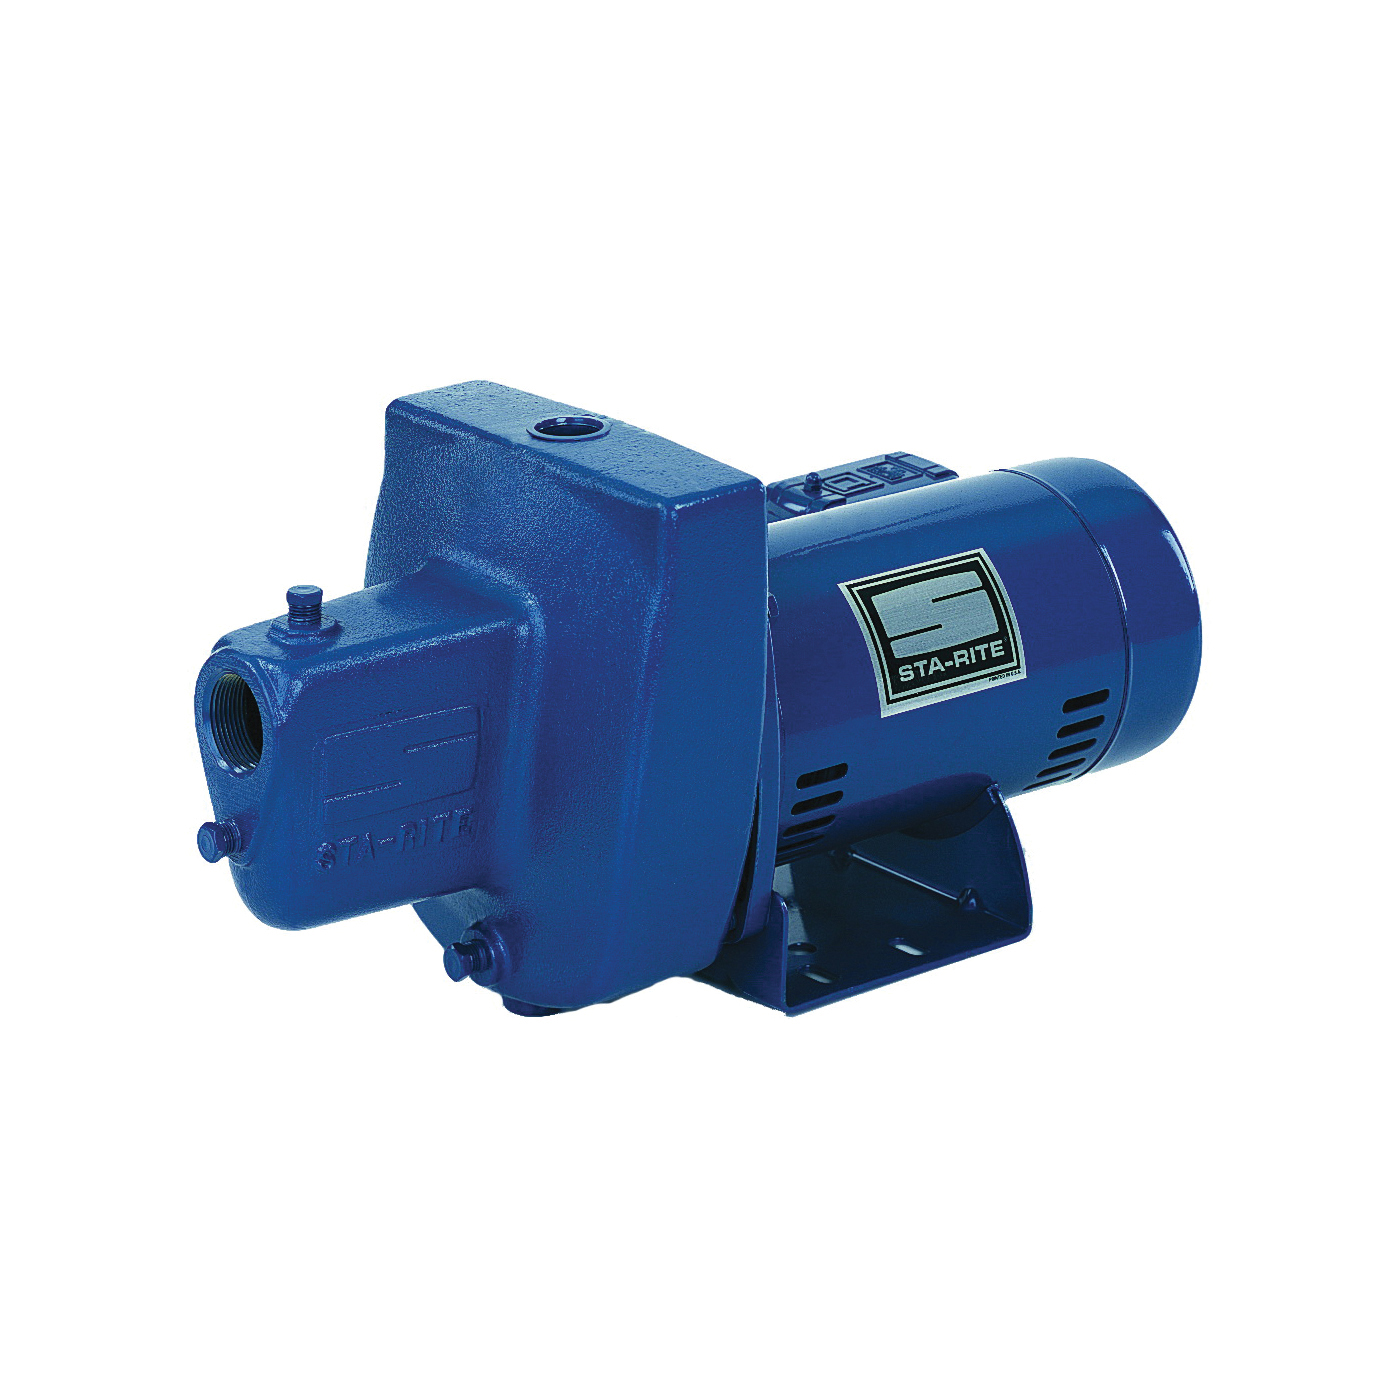 Picture of Sta-Rite FSNDH Jet Pump, 12.2/6.1 A, 115/230 V, 0.75 hp, 1-1/4 in Suction, 1 in Discharge Connection, Iron